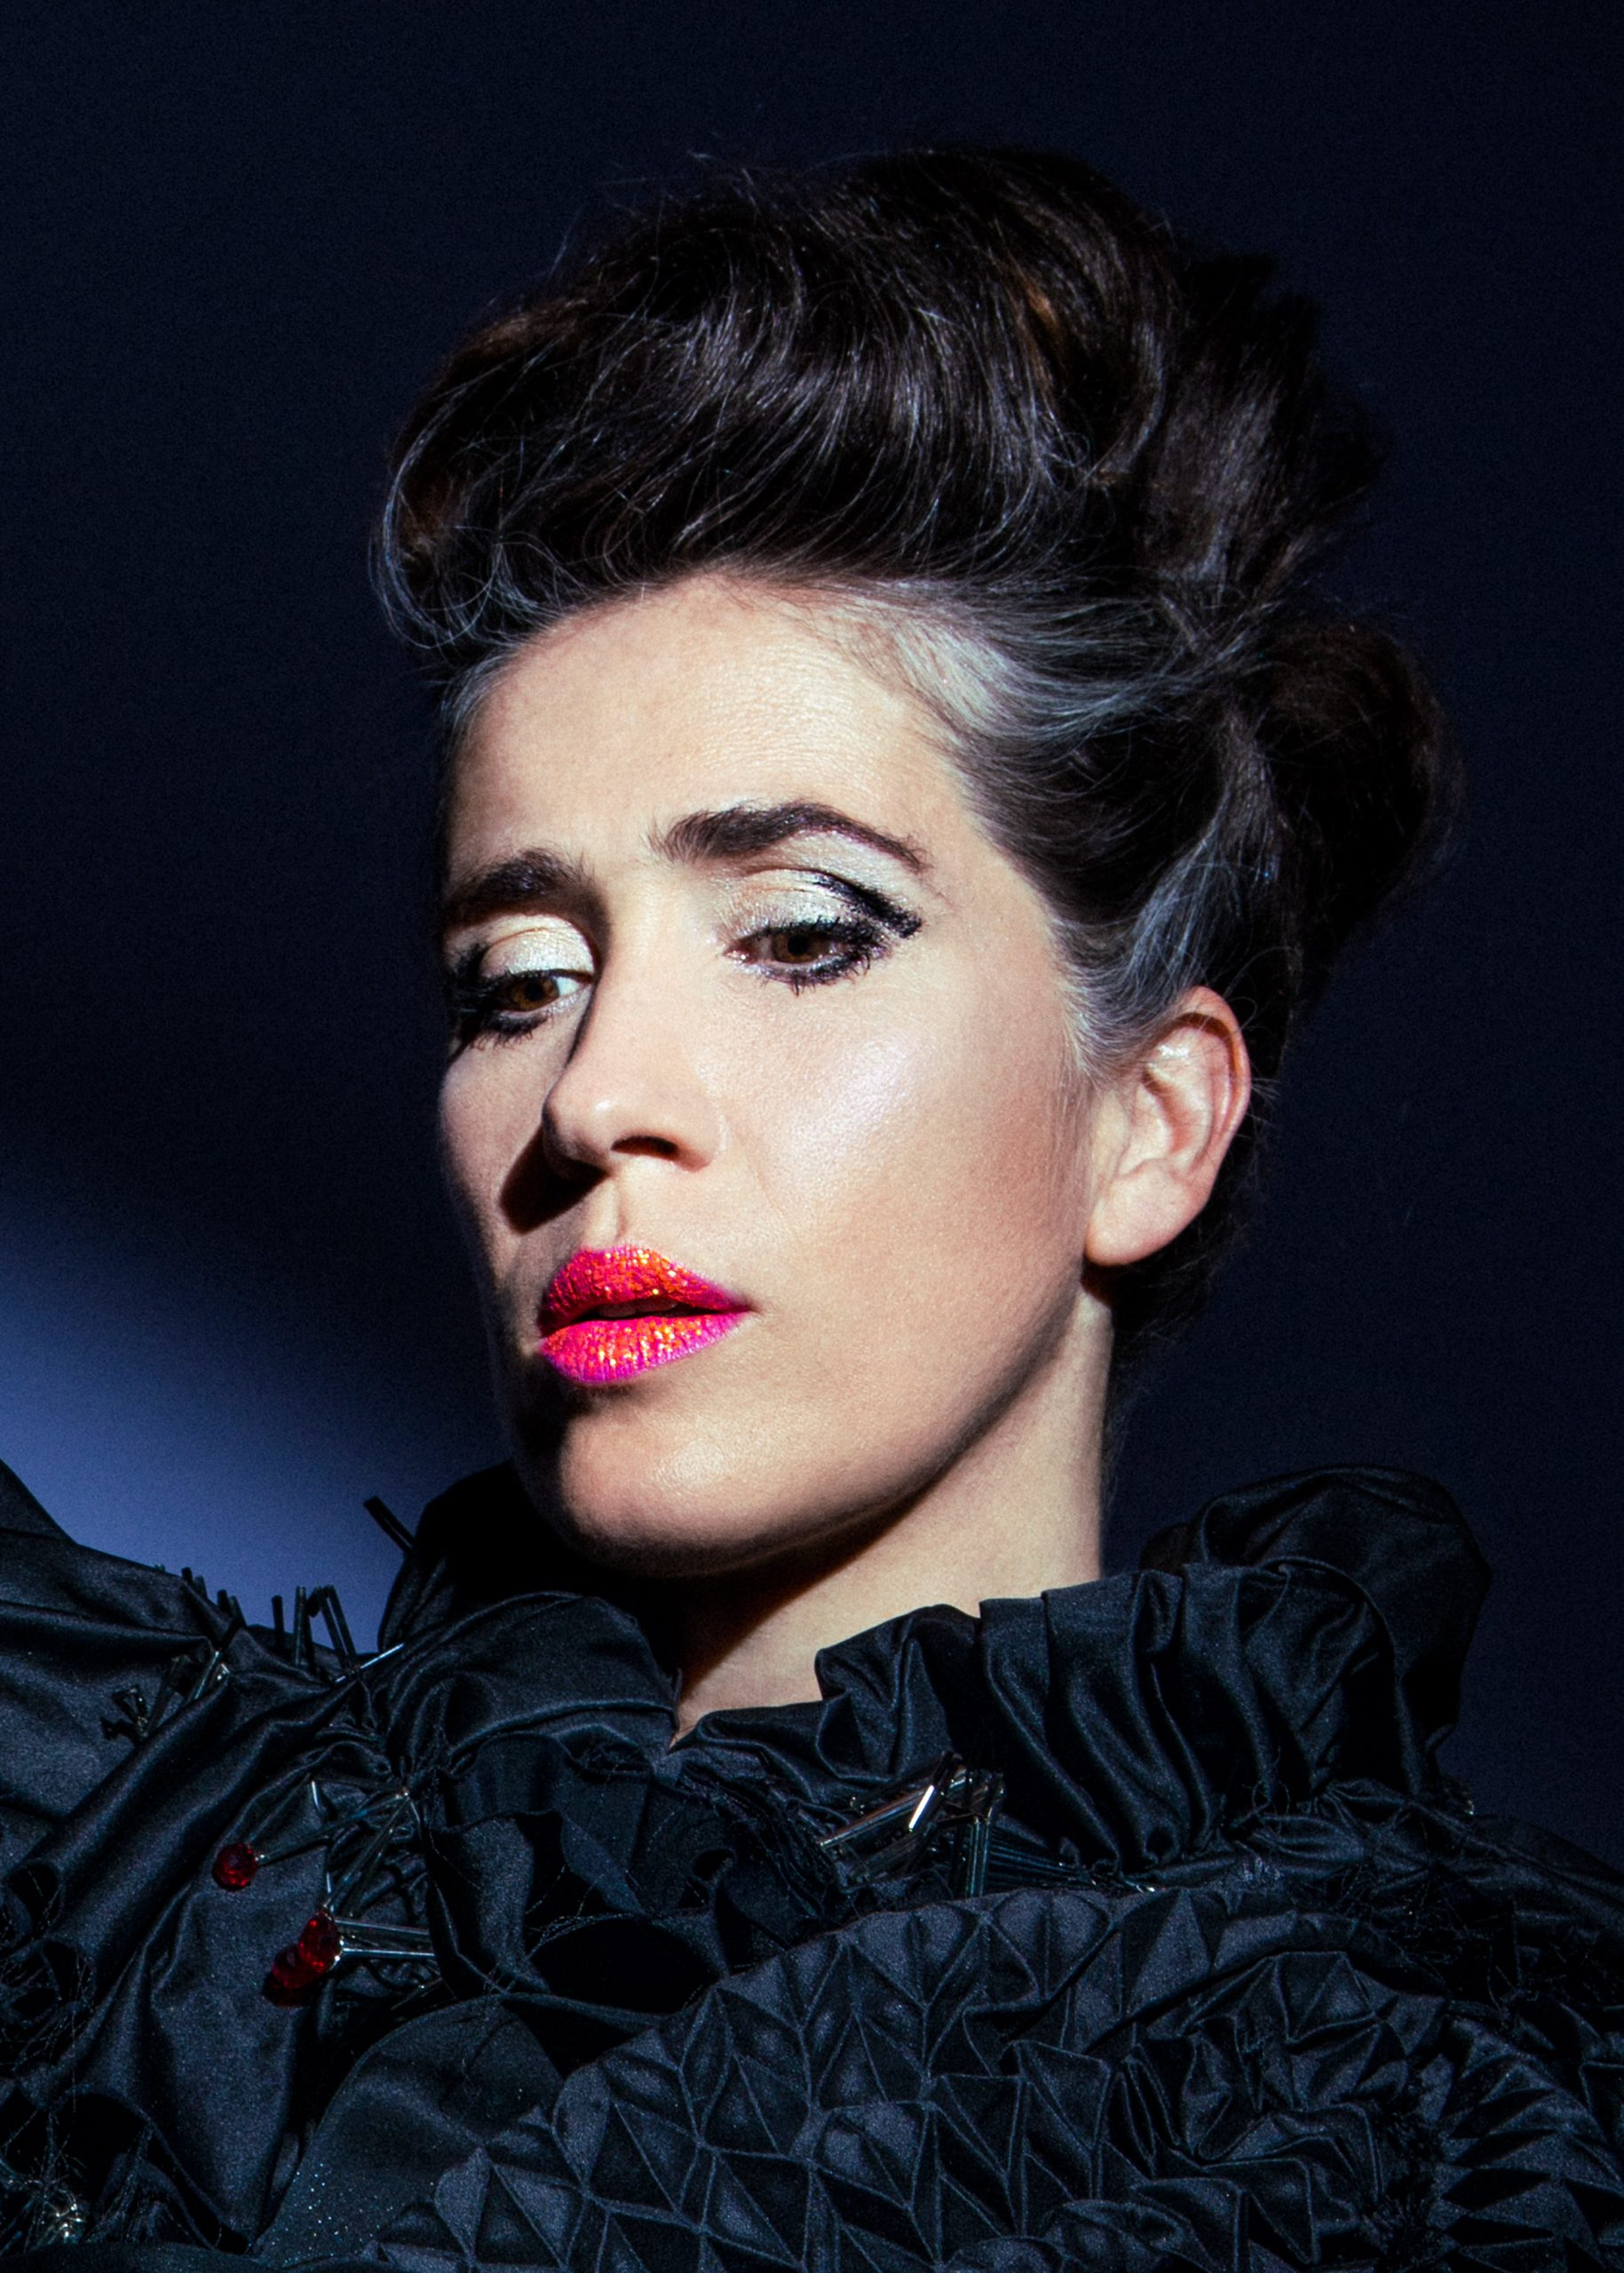 Imogen Heap closes Virtual Design Festival with an exclusive live performance